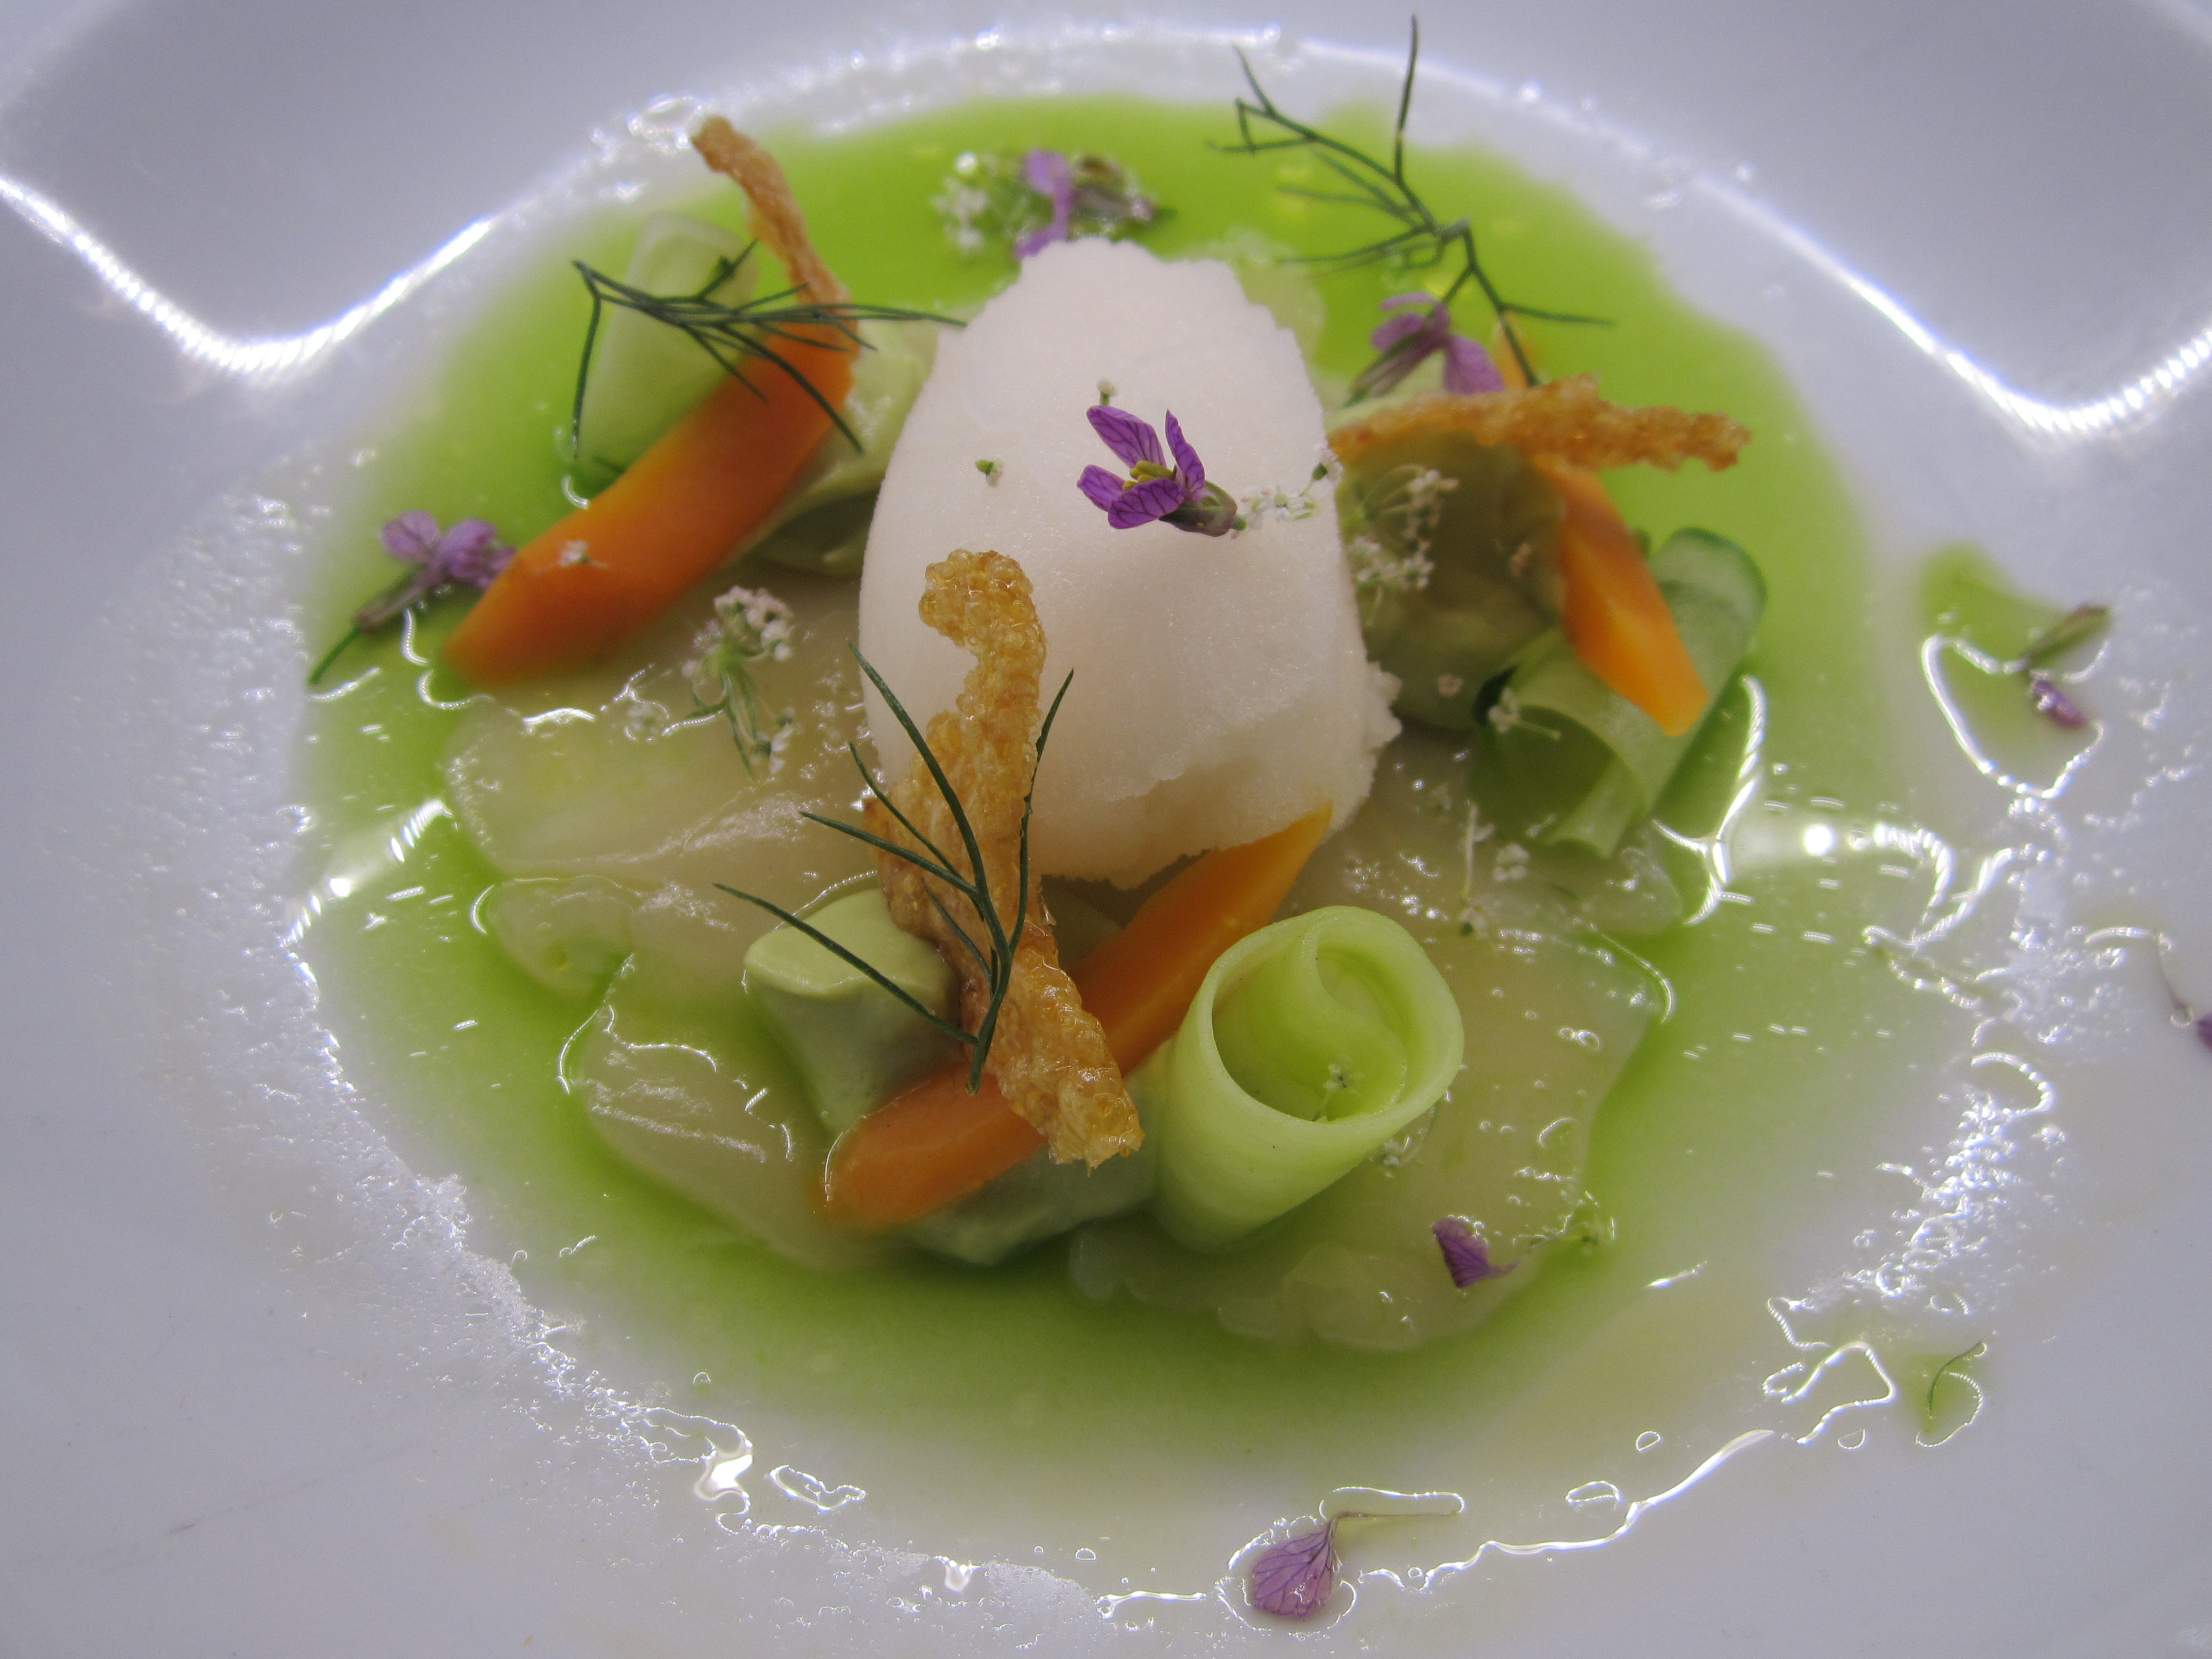 Scallop ceviche w cucumber, avocado & lemon and ginger beer sorbet